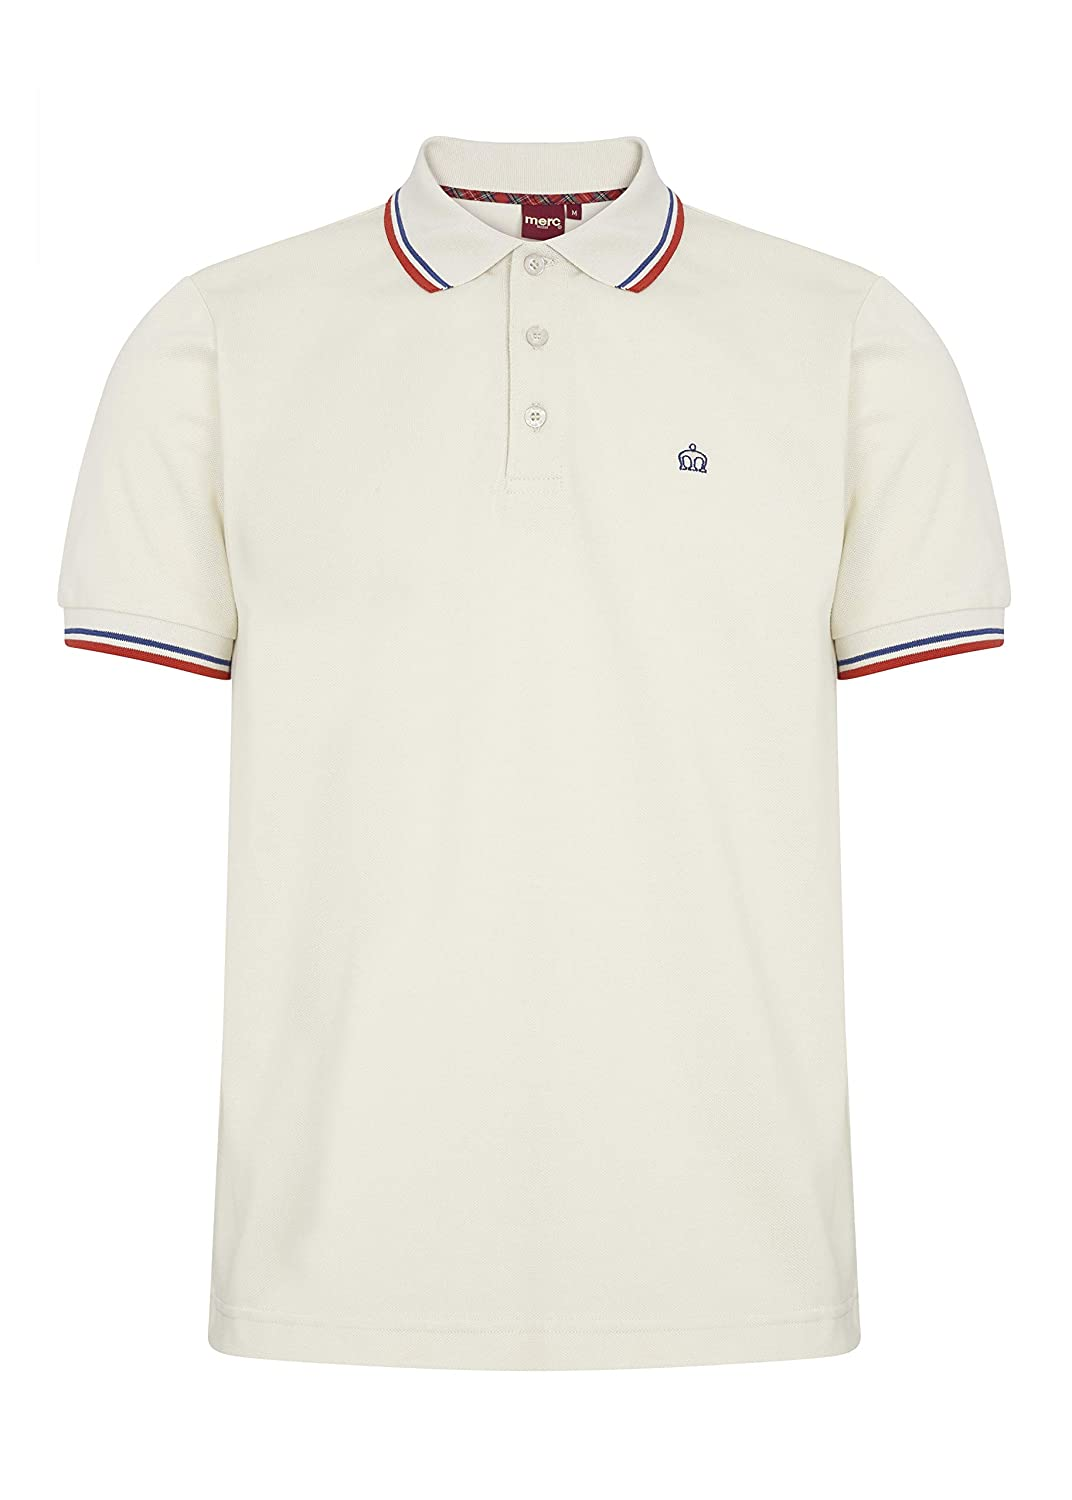 Merc Card Polo Shirt Cream -L: Amazon.es: Ropa y accesorios